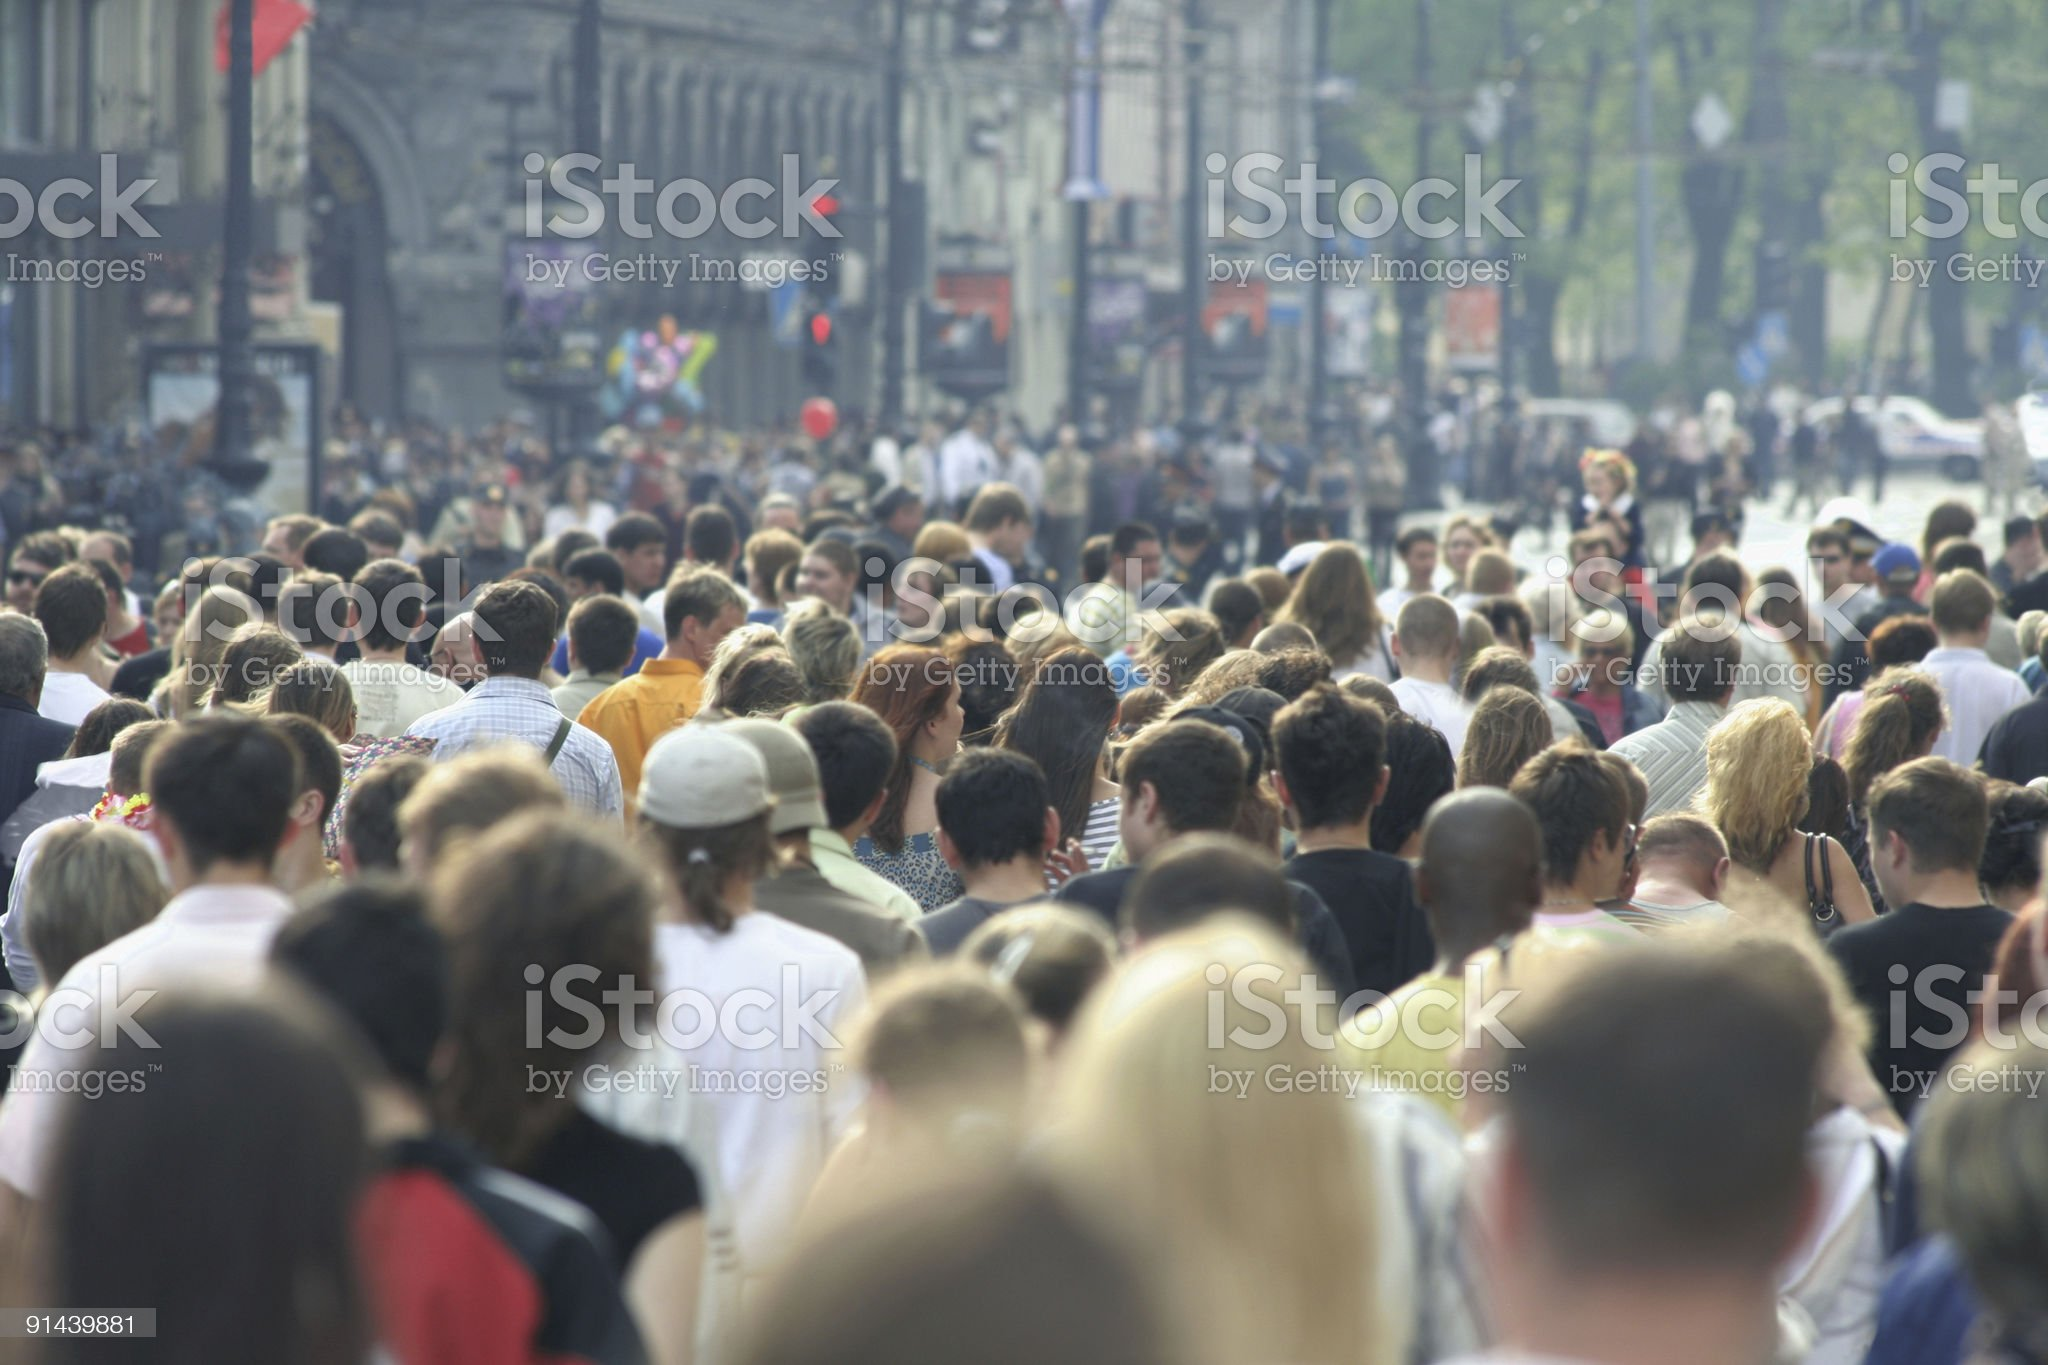 Rear view crowd in urban area during warm weather royalty-free stock photo